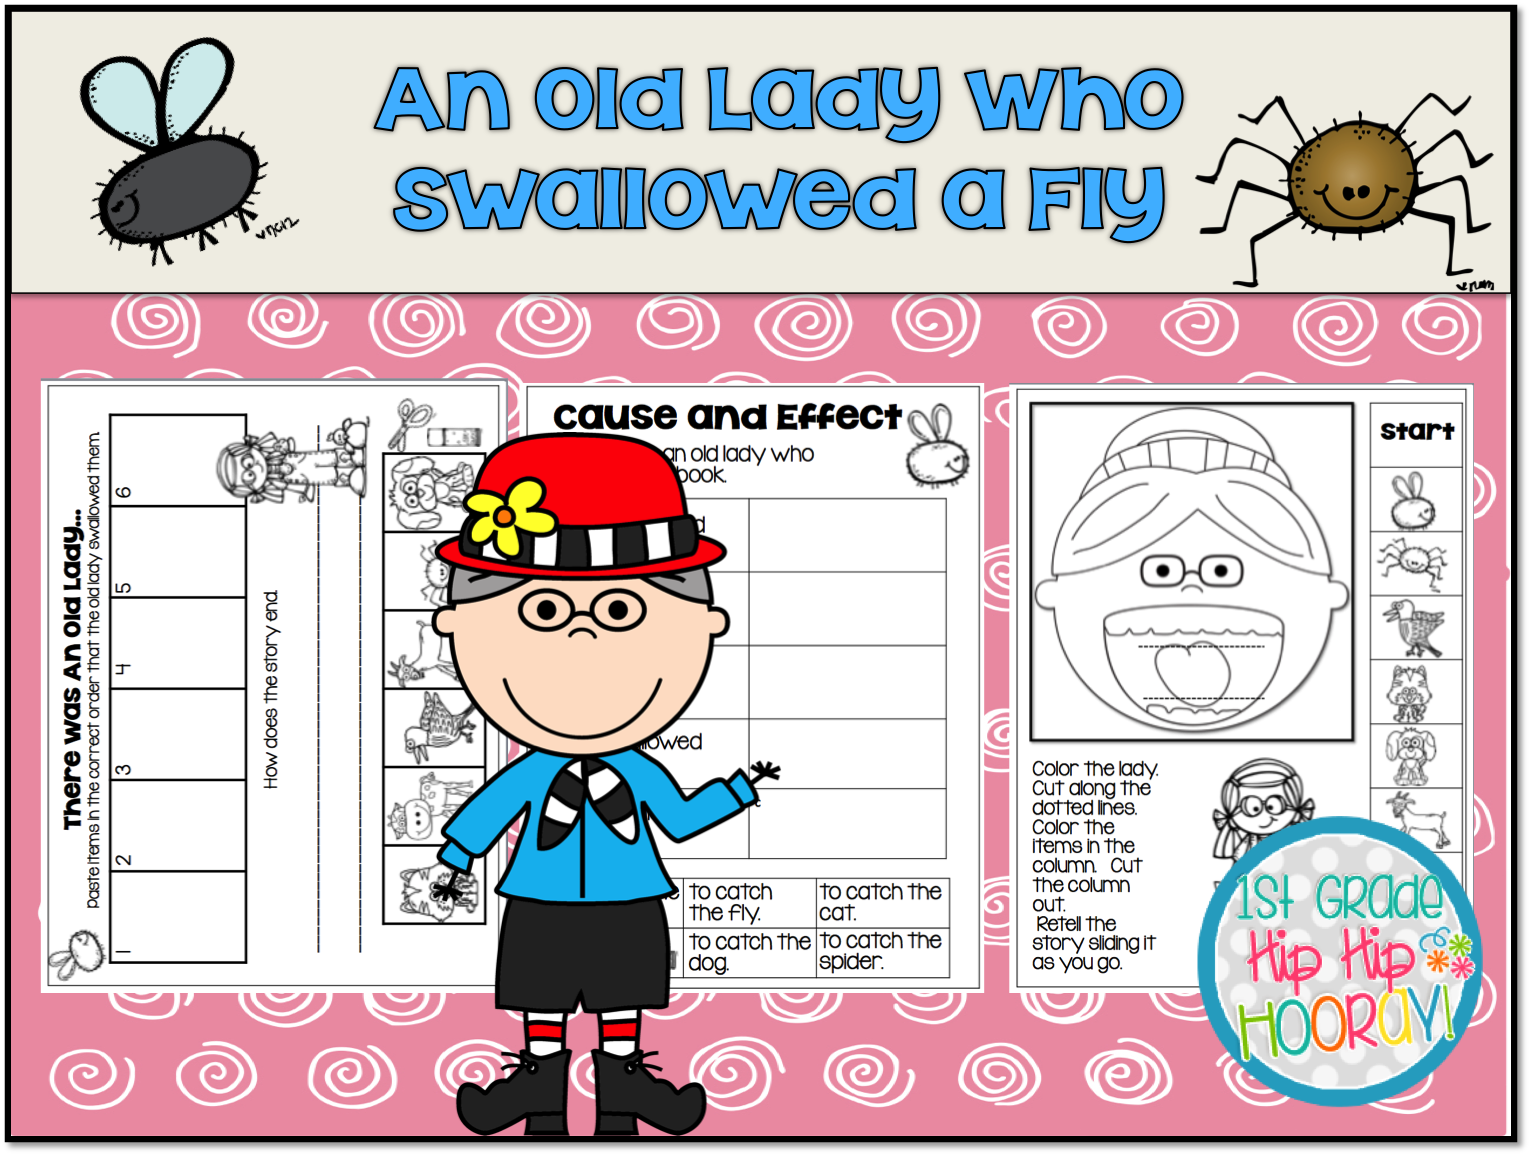 1st Grade Hip Hip Hooray Old Lady Who Swallowed A Fly